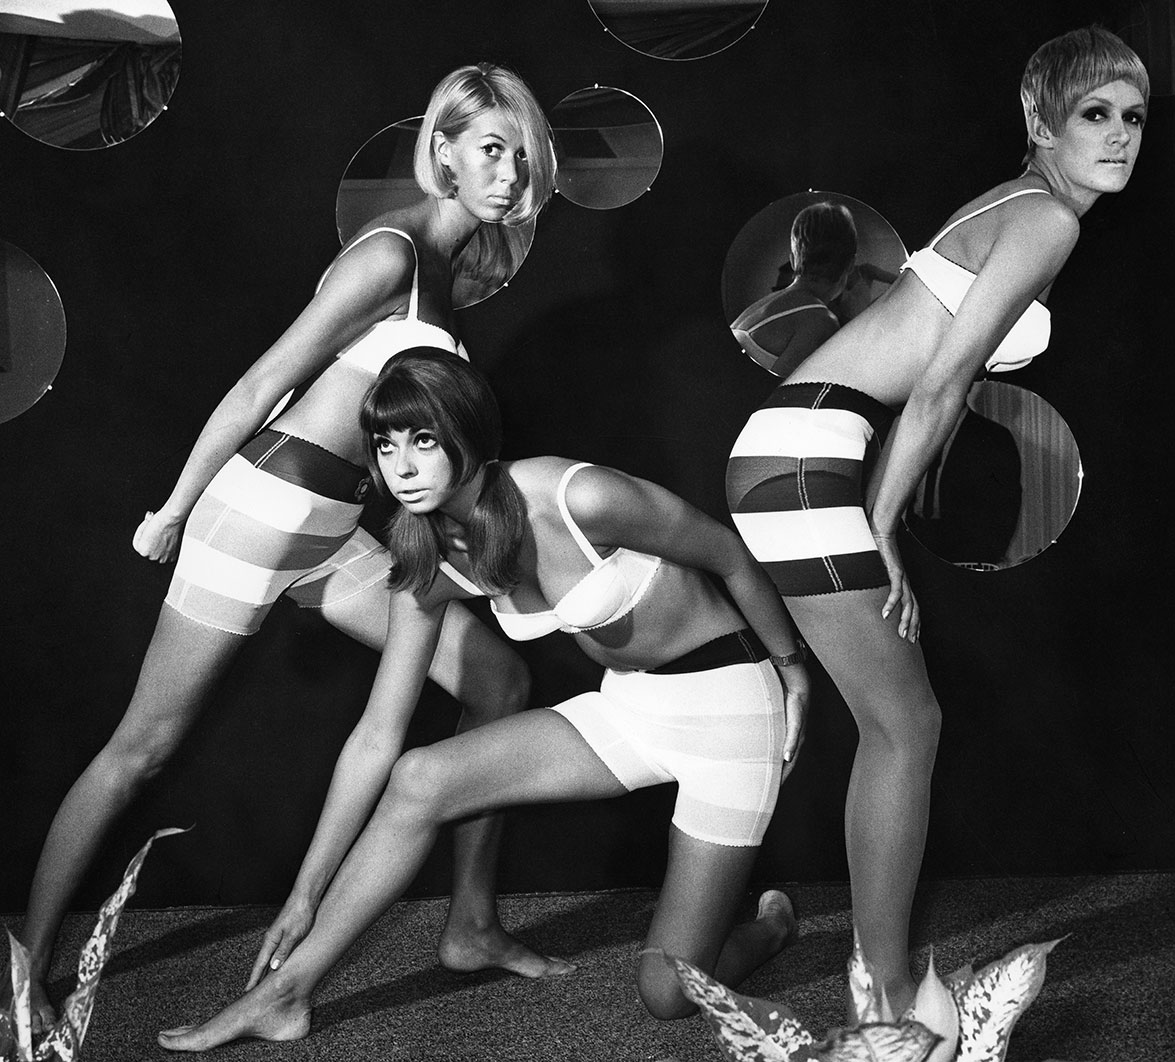 Three models wearing underwear designed by Mary Quant, c. 1966  © Otfried Schmidt/ullstein bild/Getty Images